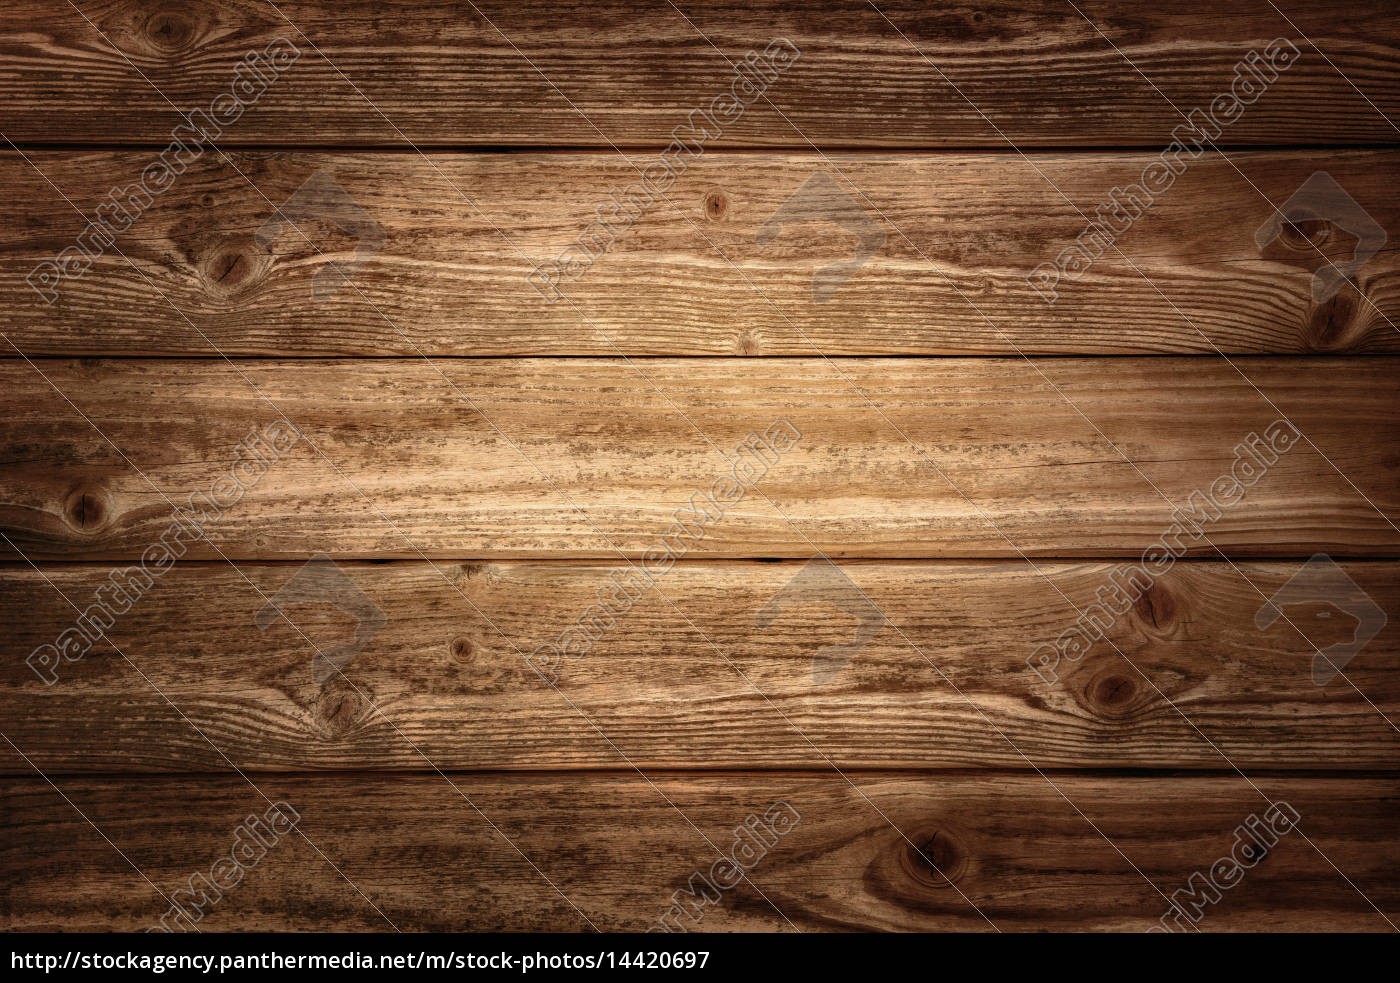 Rustic Wood Planks Background Royalty Free Image 14420697 Panthermedia Stock Agency Rustic decorative design hand drawn vintage wood vector. https stockagency panthermedia net m stock photos 14420697 rustic wood planks background